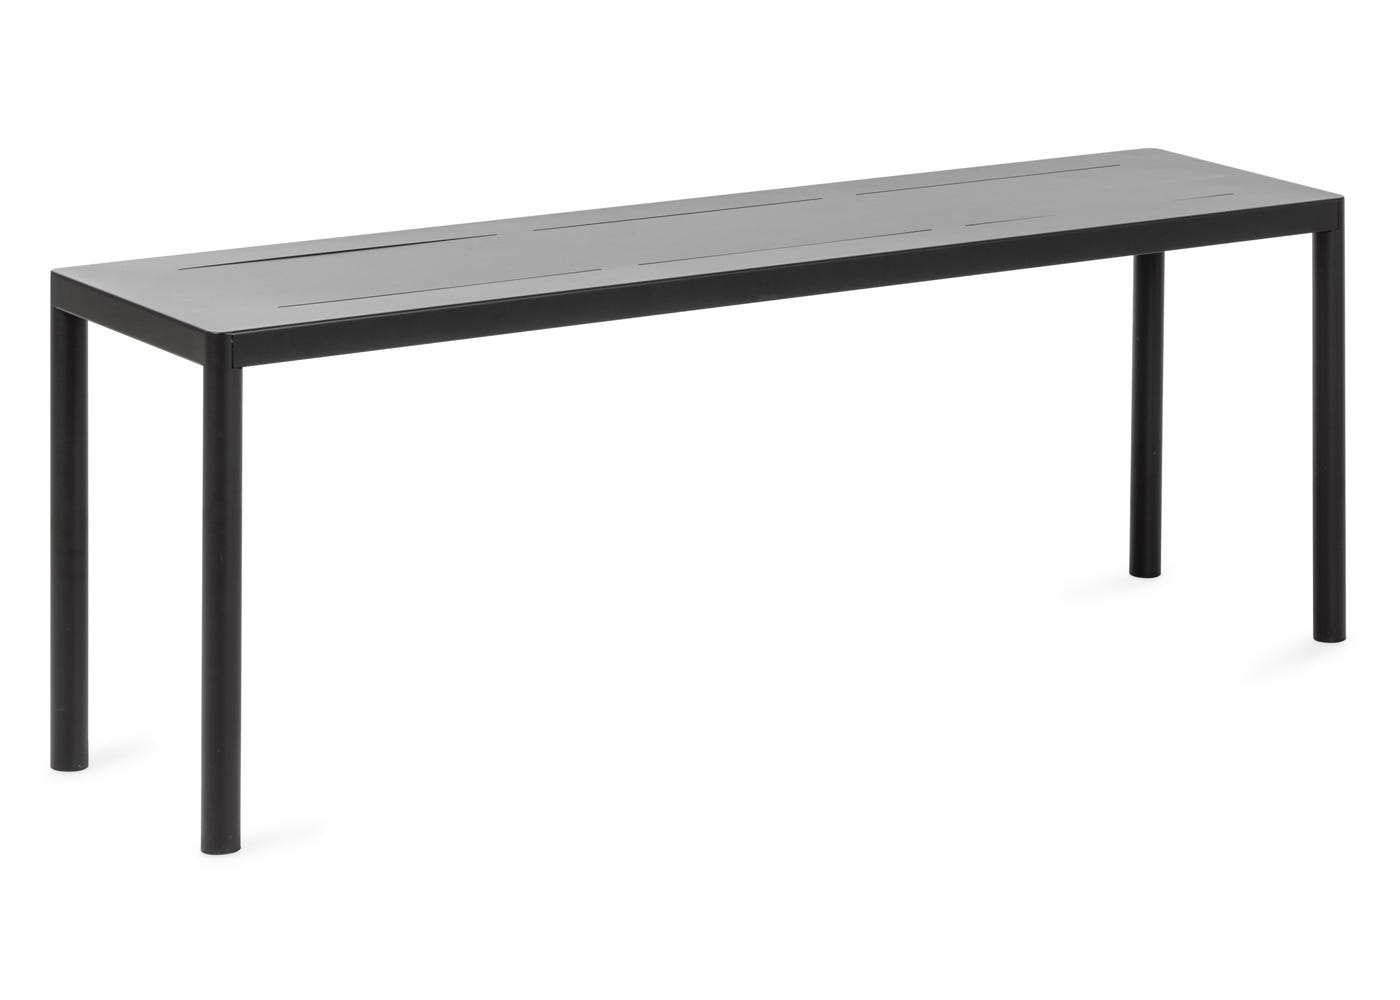 As shown: Petra outdoor bench in dark grey - Side view.